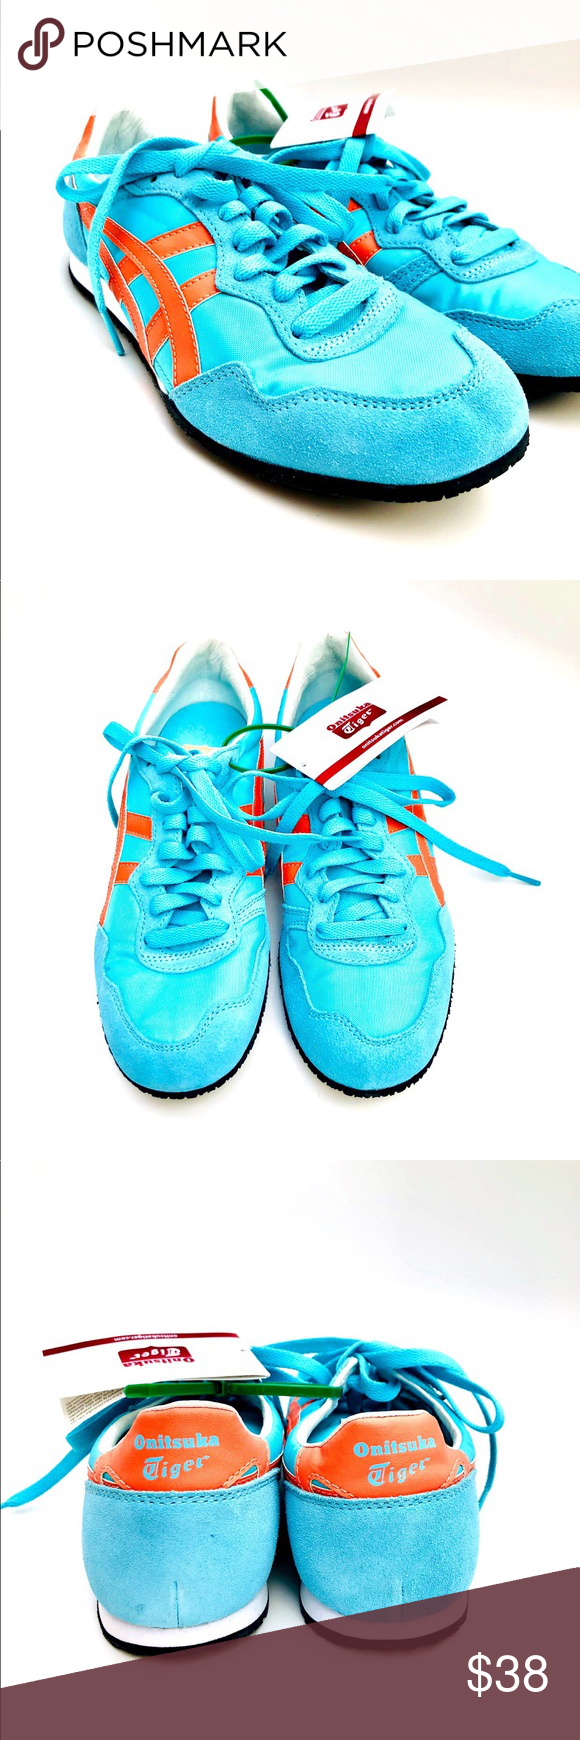 0d3fdc7c91 ... where to buy asics onitsuka tiger serrano womens sneaker sz 8 onitsuka  tiger by asics serrano